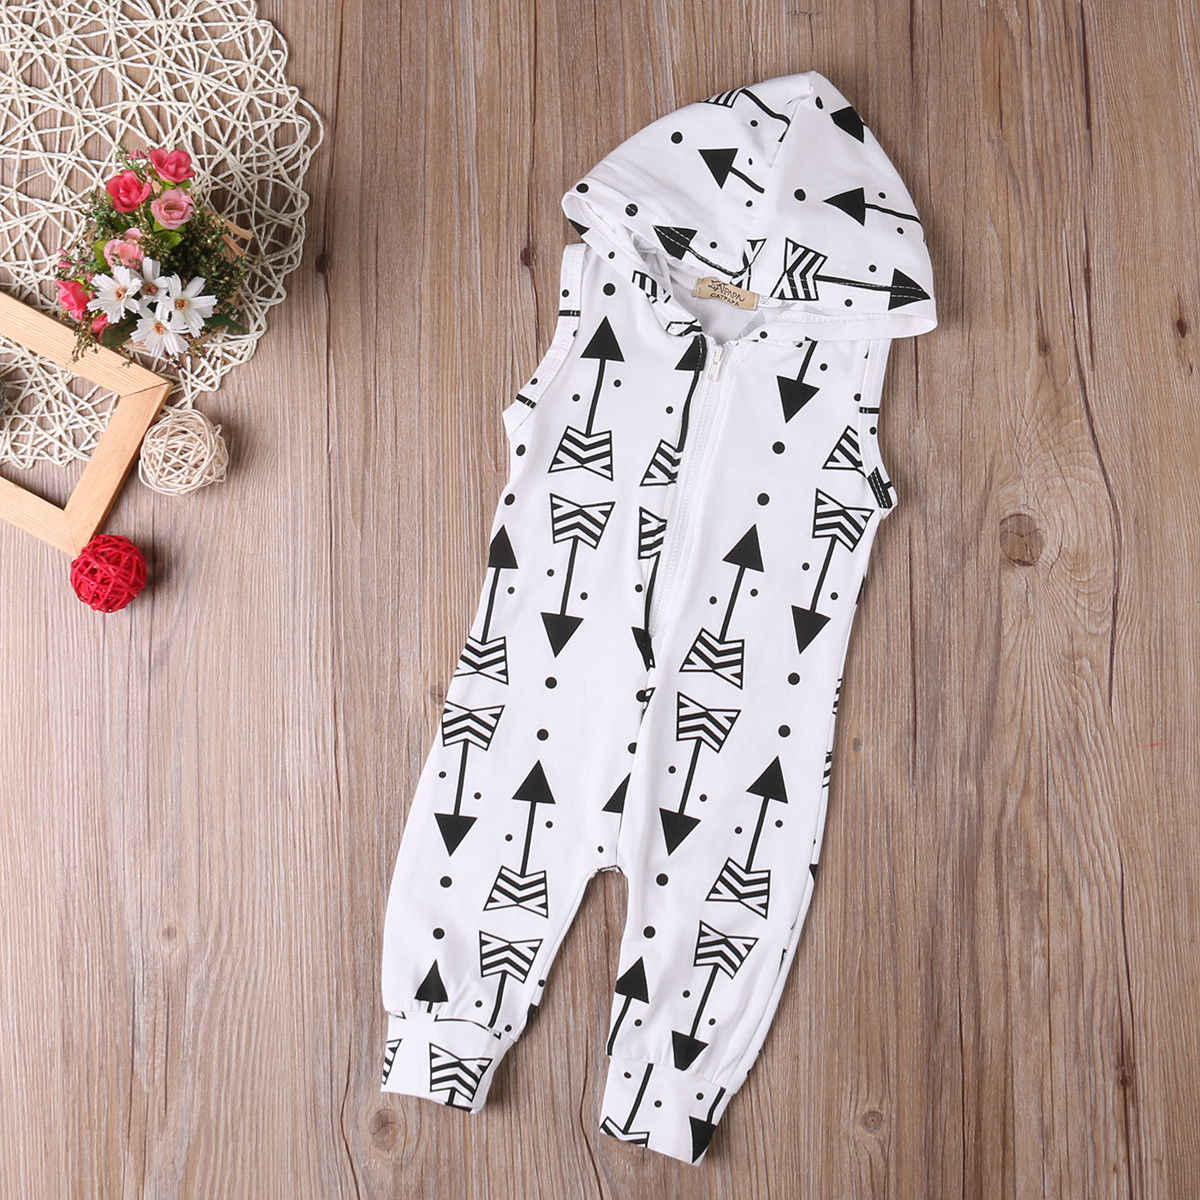 28b56ed88 ... Infant Baby Boy Kid Clothing Hooded Sleeveless Romper Arrow Cute Zipper  Jumpsuit Outfits Baby Boys Clothes